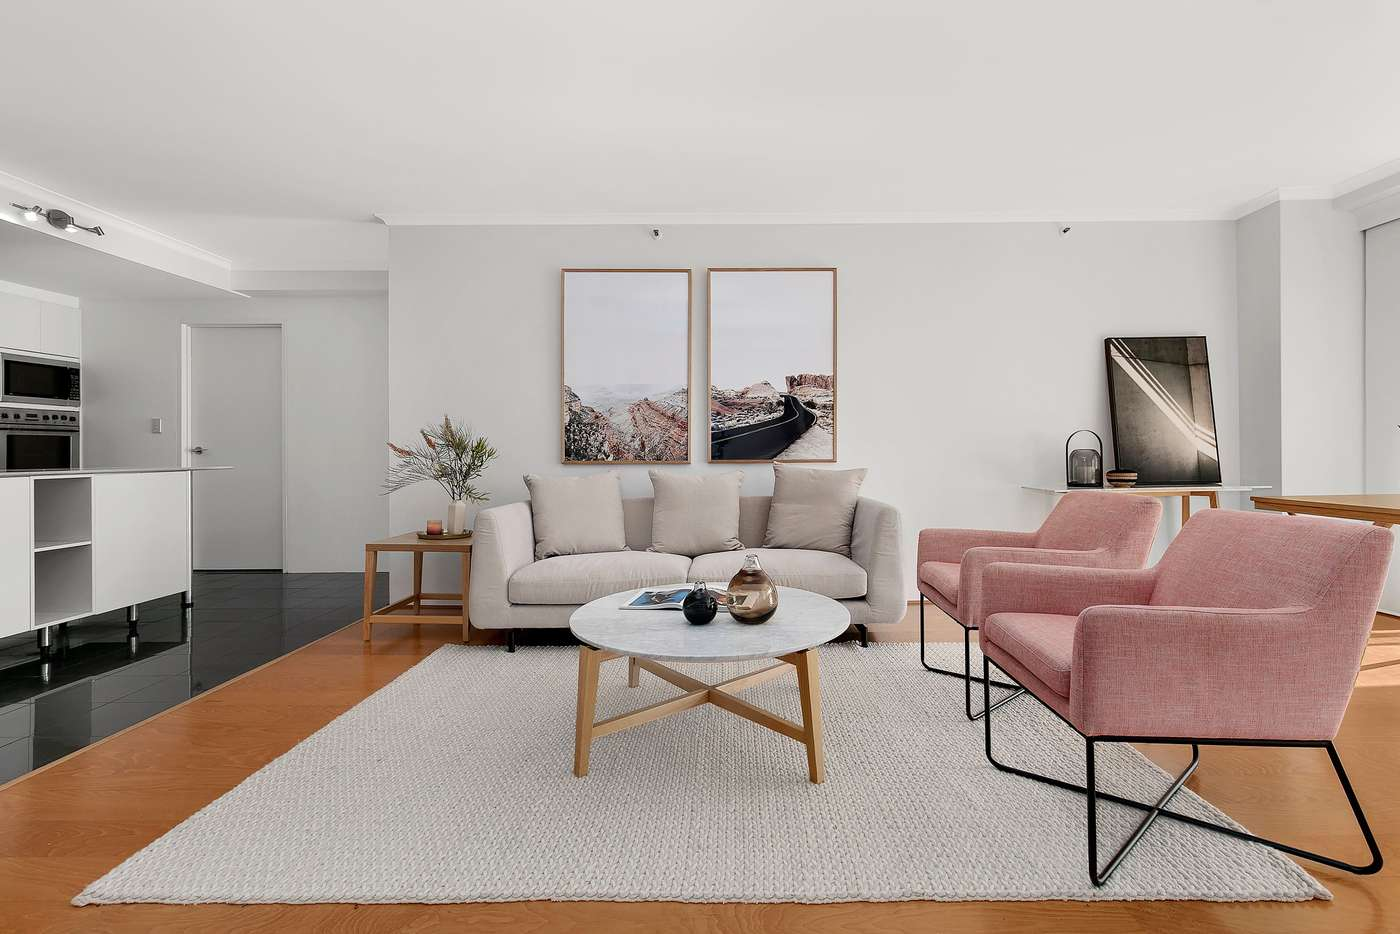 Main view of Homely apartment listing, 24/168 Goulburn Street, Surry Hills, NSW 2010